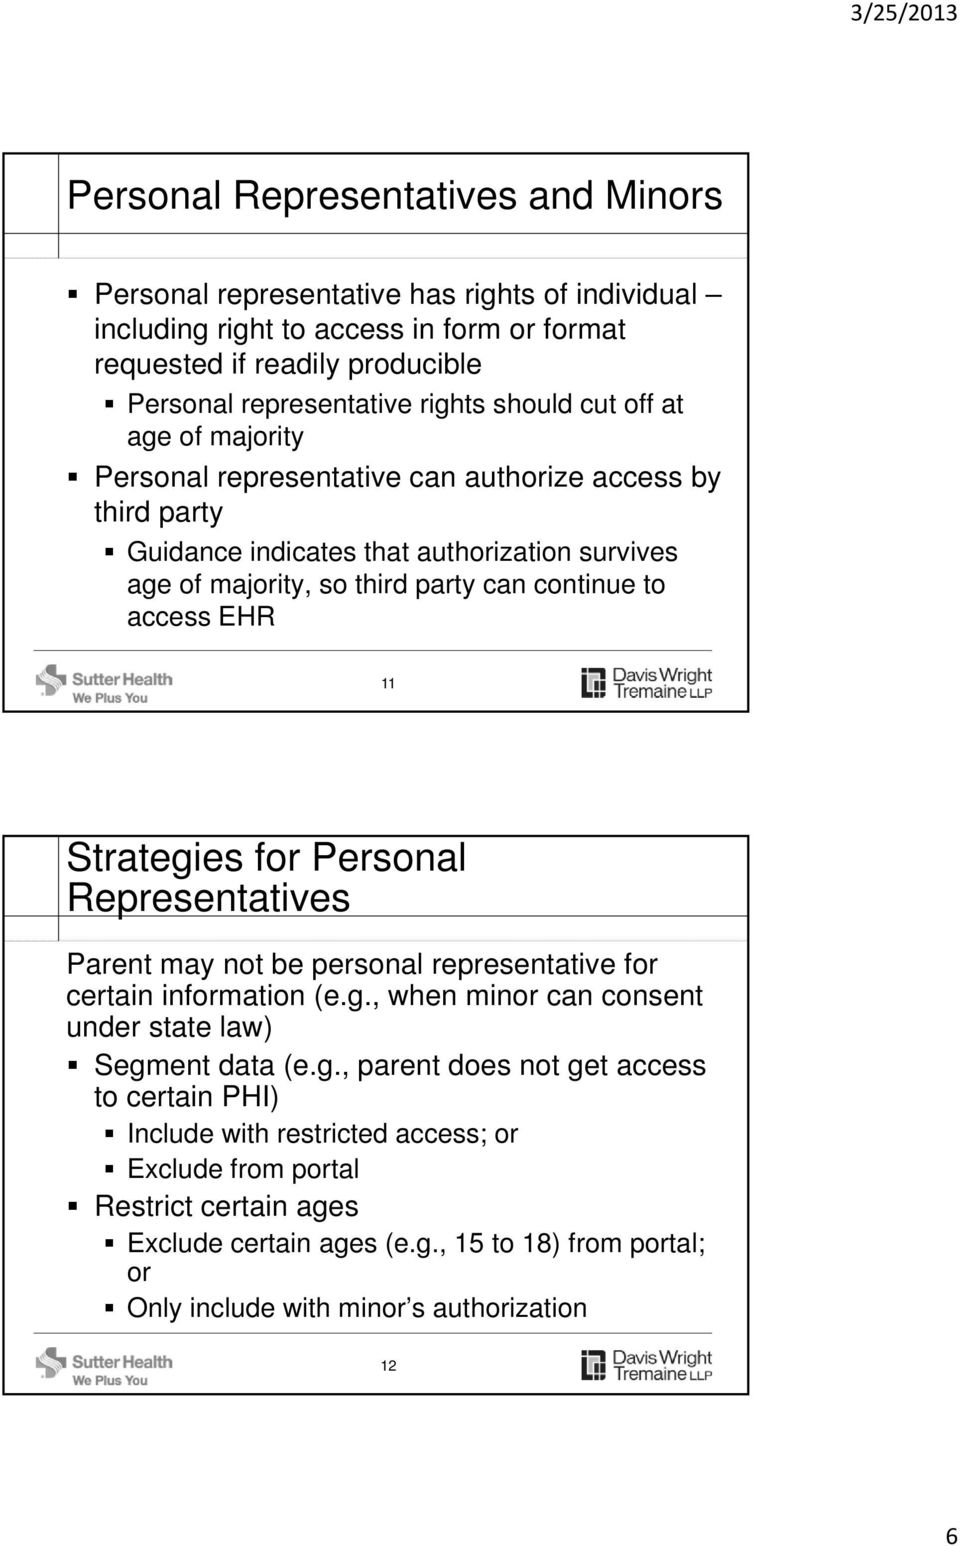 EHR 11 Strategies for Personal Representatives Parent may not be personal representative for certain information (e.g., when minor can consent under state law) Segment data (e.g., parent does not get access to certain PHI) Include with restricted access; or Exclude from portal Restrict certain ages Exclude certain ages (e.